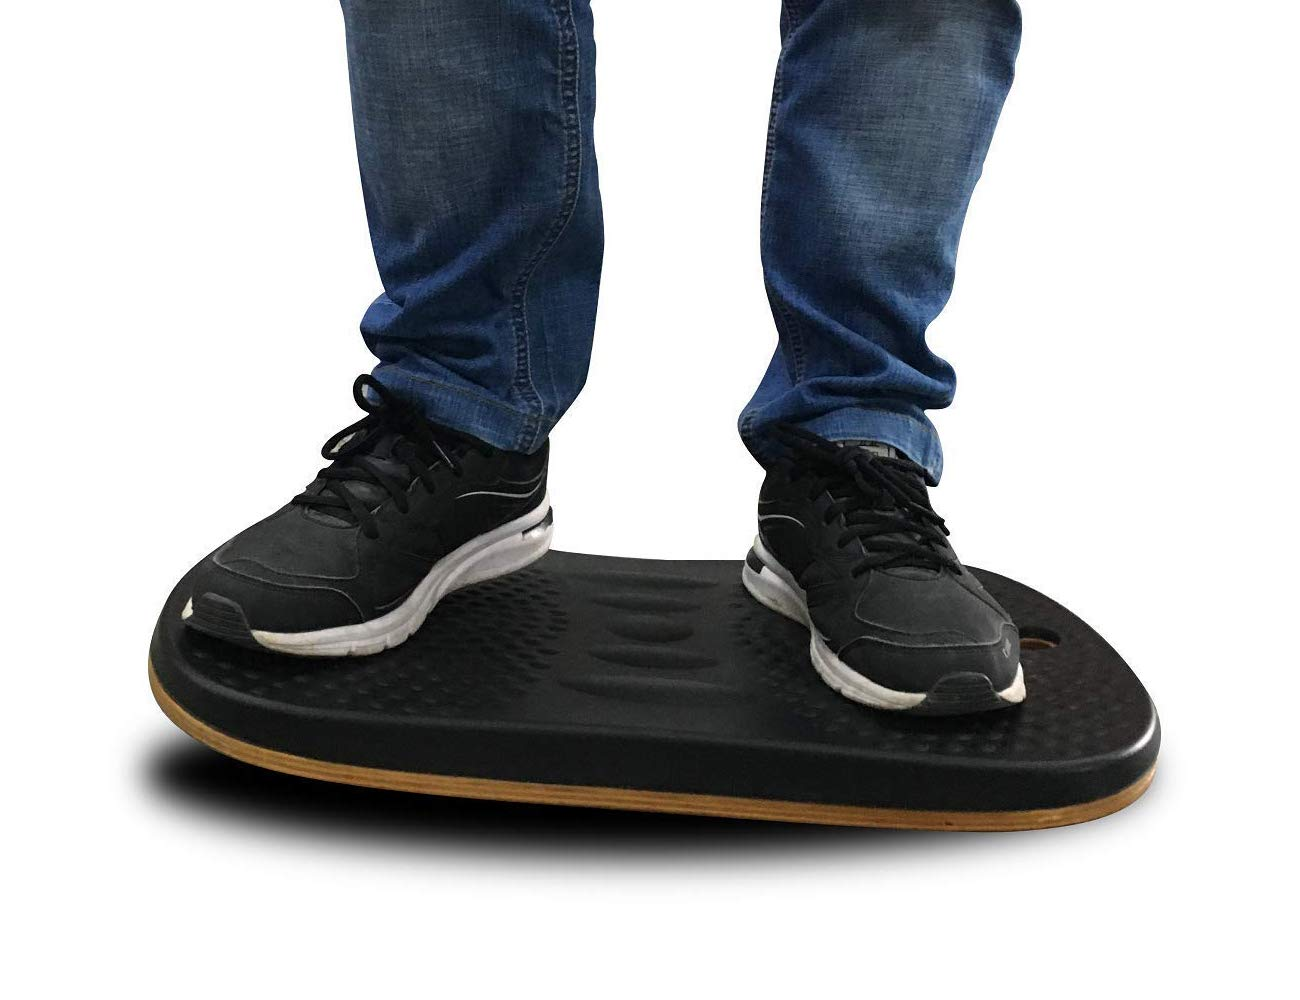 affordable balance board